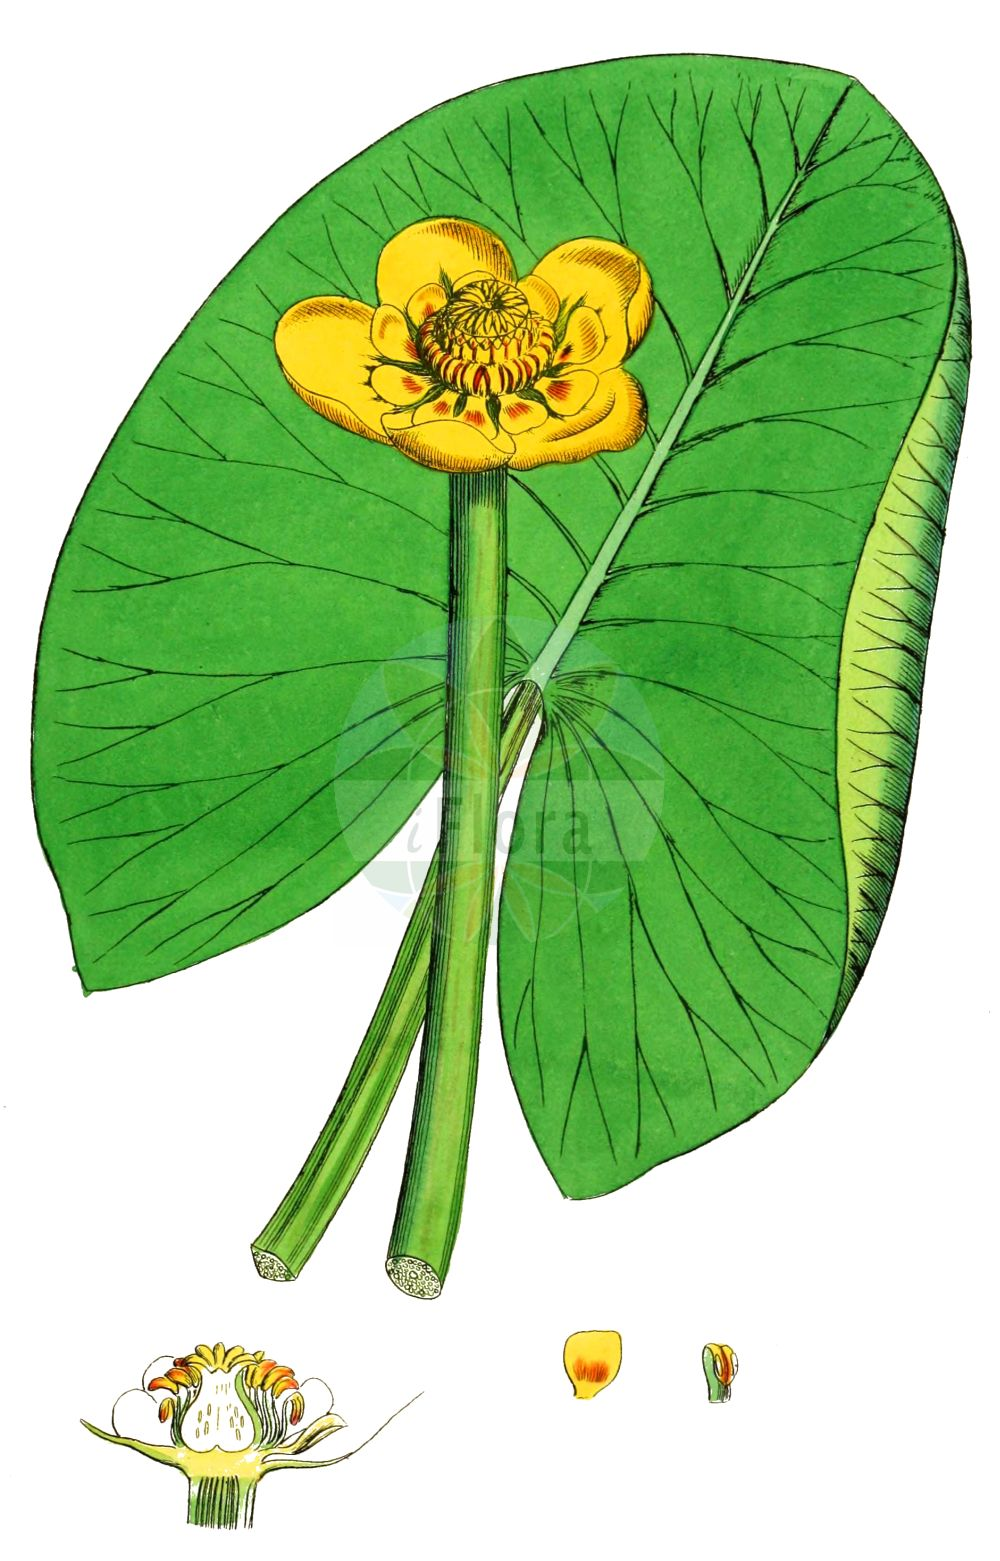 Historische Abbildung von Nuphar lutea (Gelbe Teichrose - Yellow Water-lily). Das Bild zeigt Blatt, Bluete, Frucht und Same. ---- Historical Drawing of Nuphar lutea (Gelbe Teichrose - Yellow Water-lily).The image is showing leaf, flower, fruit and seed.(Nuphar lutea,Gelbe Teichrose,Yellow Water-lily,Nenuphar luteum,Nuphar lutea,Nuphar sericea,Nymphaea lutea,Nymphozanthus luteus,Gelbe Teichrose,Grosse Teichrose,Mummel,Yellow Water-lily,Cow Lily,Spatterdock,Yellow Pond Lily,Nuphar,Teichrose,Pond-lily,Nymphaeaceae,Seerosengewaechse,Water-lily family,Blatt,Bluete,Frucht,Same,leaf,flower,fruit,seed,Sowerby (1790-1813))